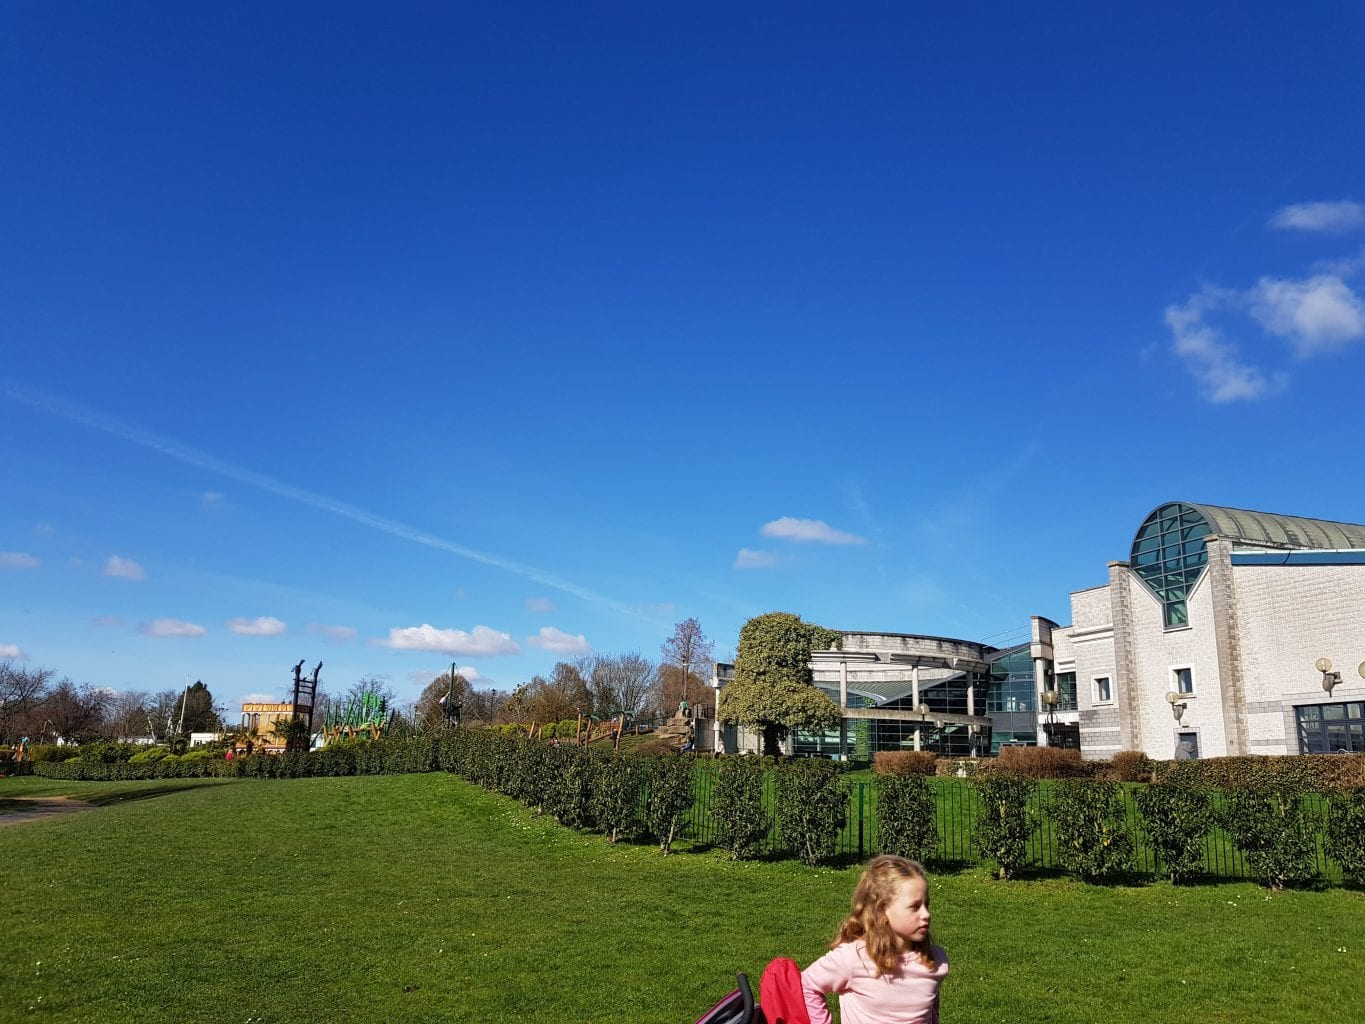 Woking Leisure Centre and park